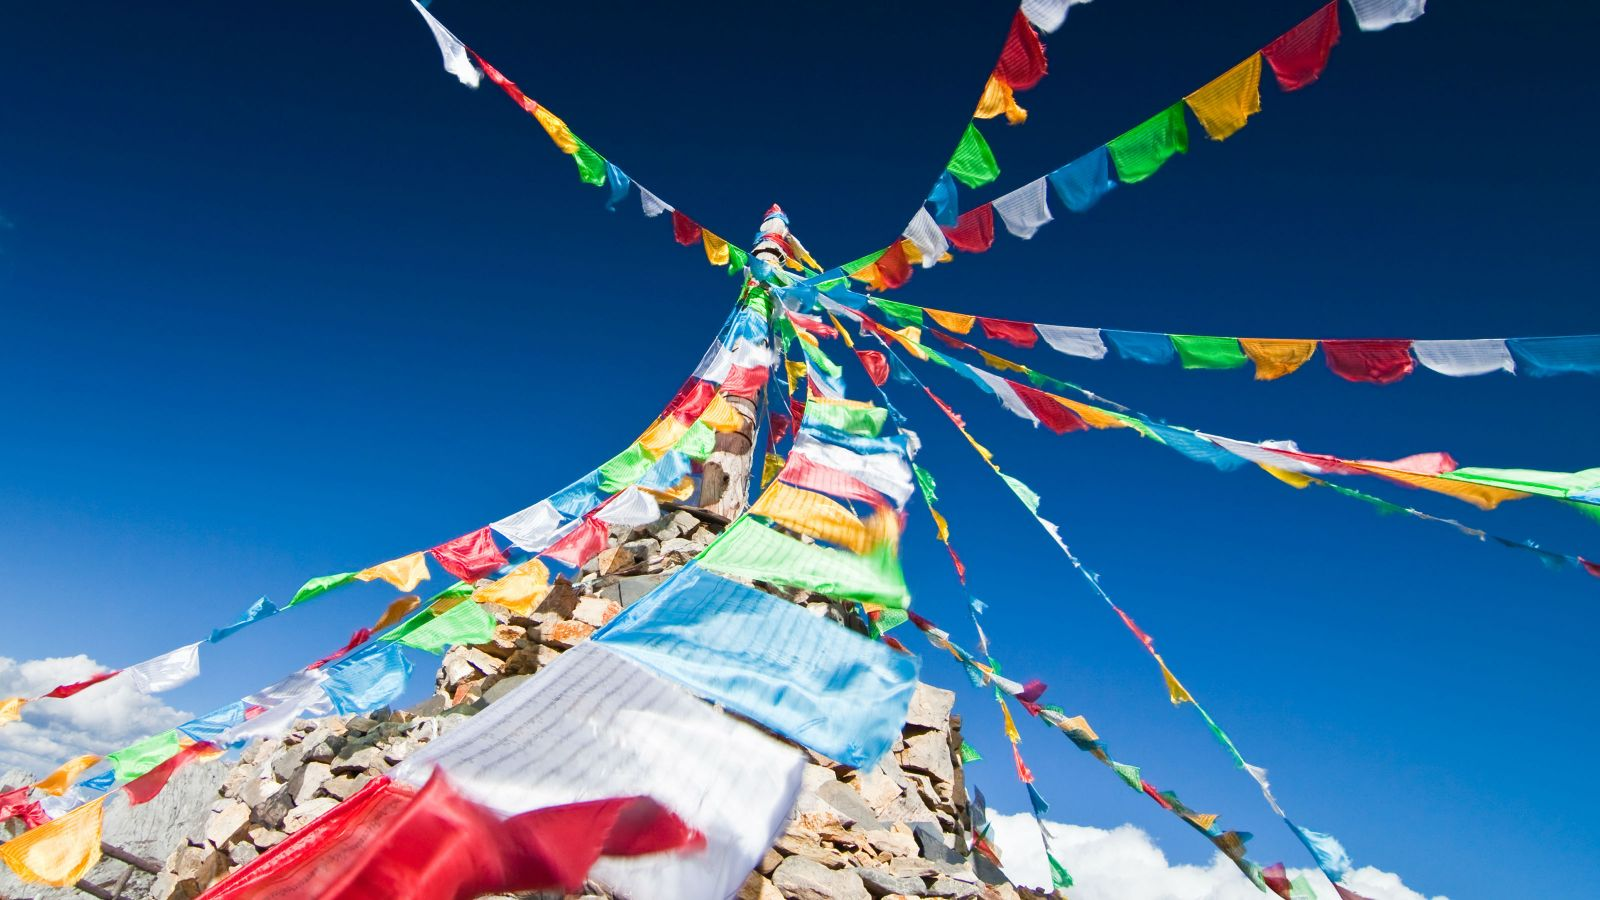 Prayer flags against a blue sky